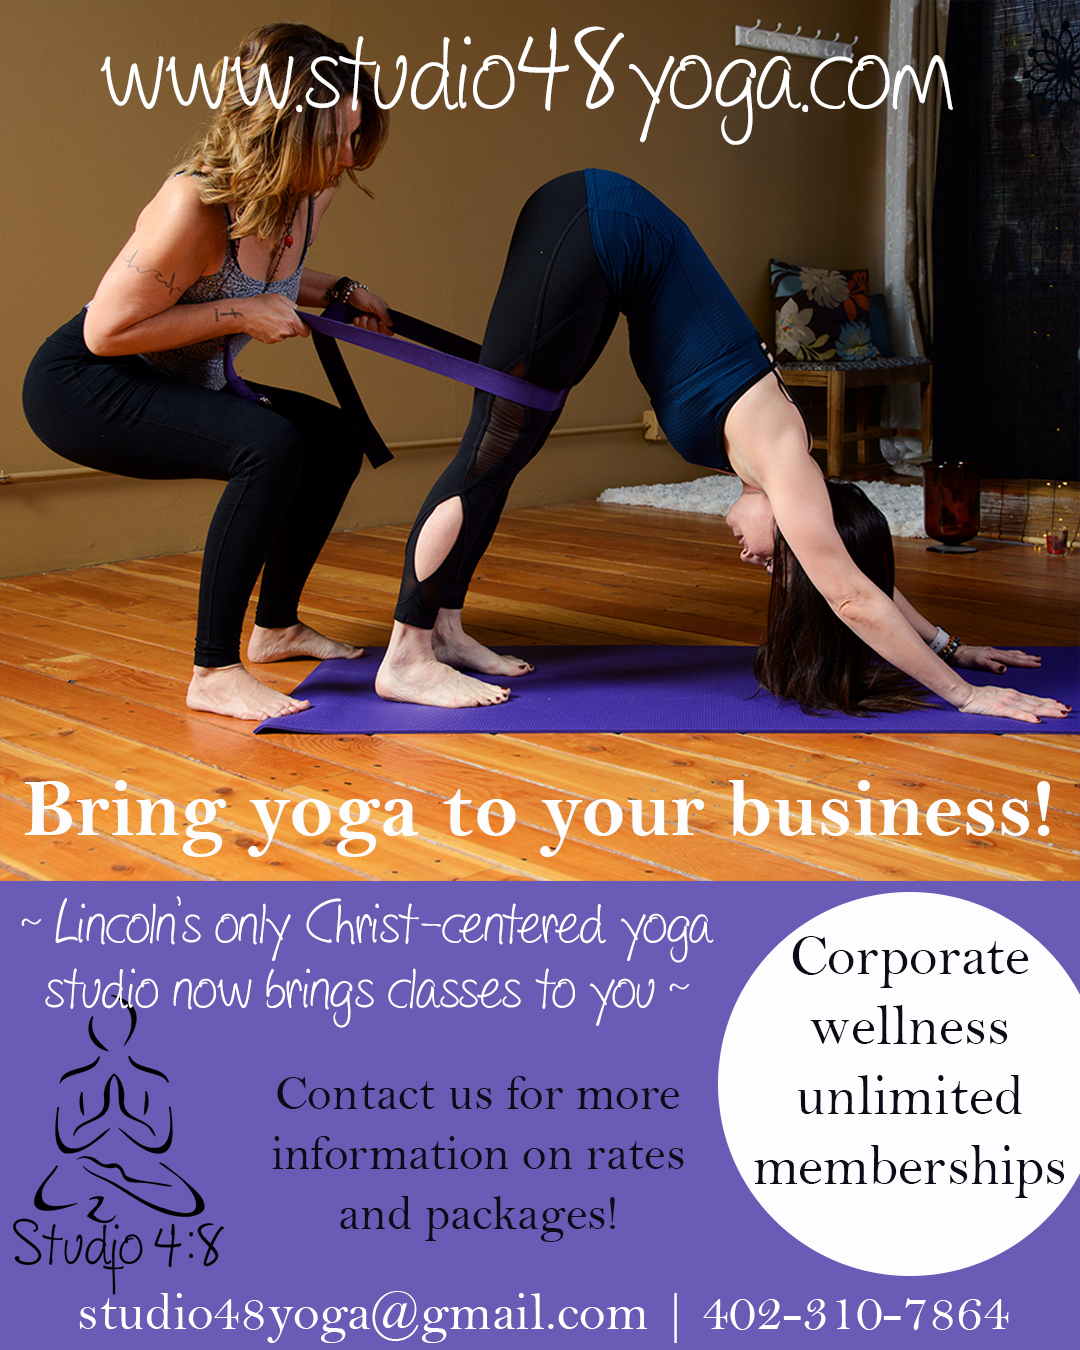 Bring yoga to YOUR business!